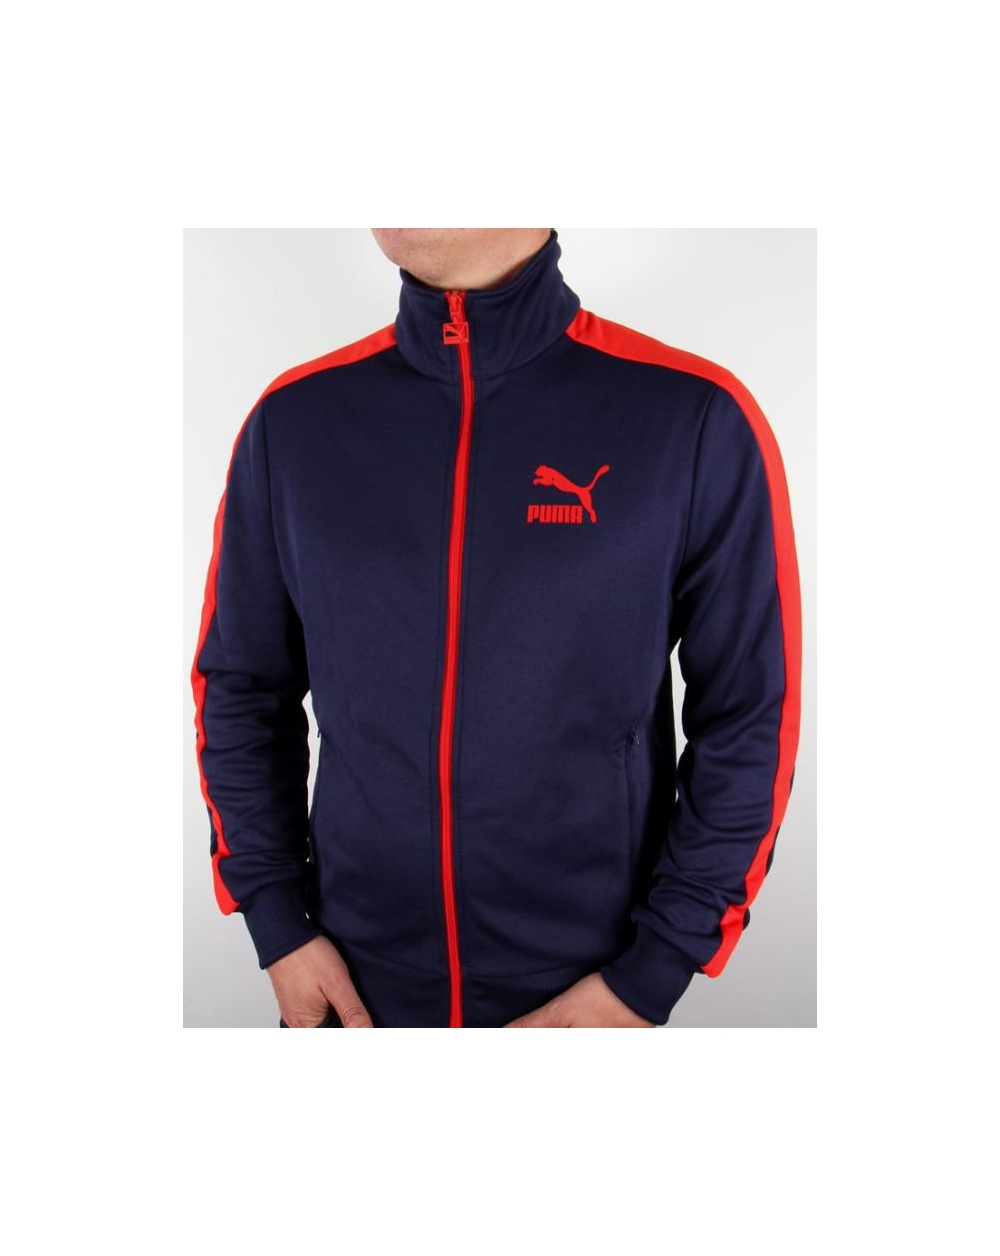 fb6361fb3460 Puma T7 Track Top Navy red - T7 tracksuit top